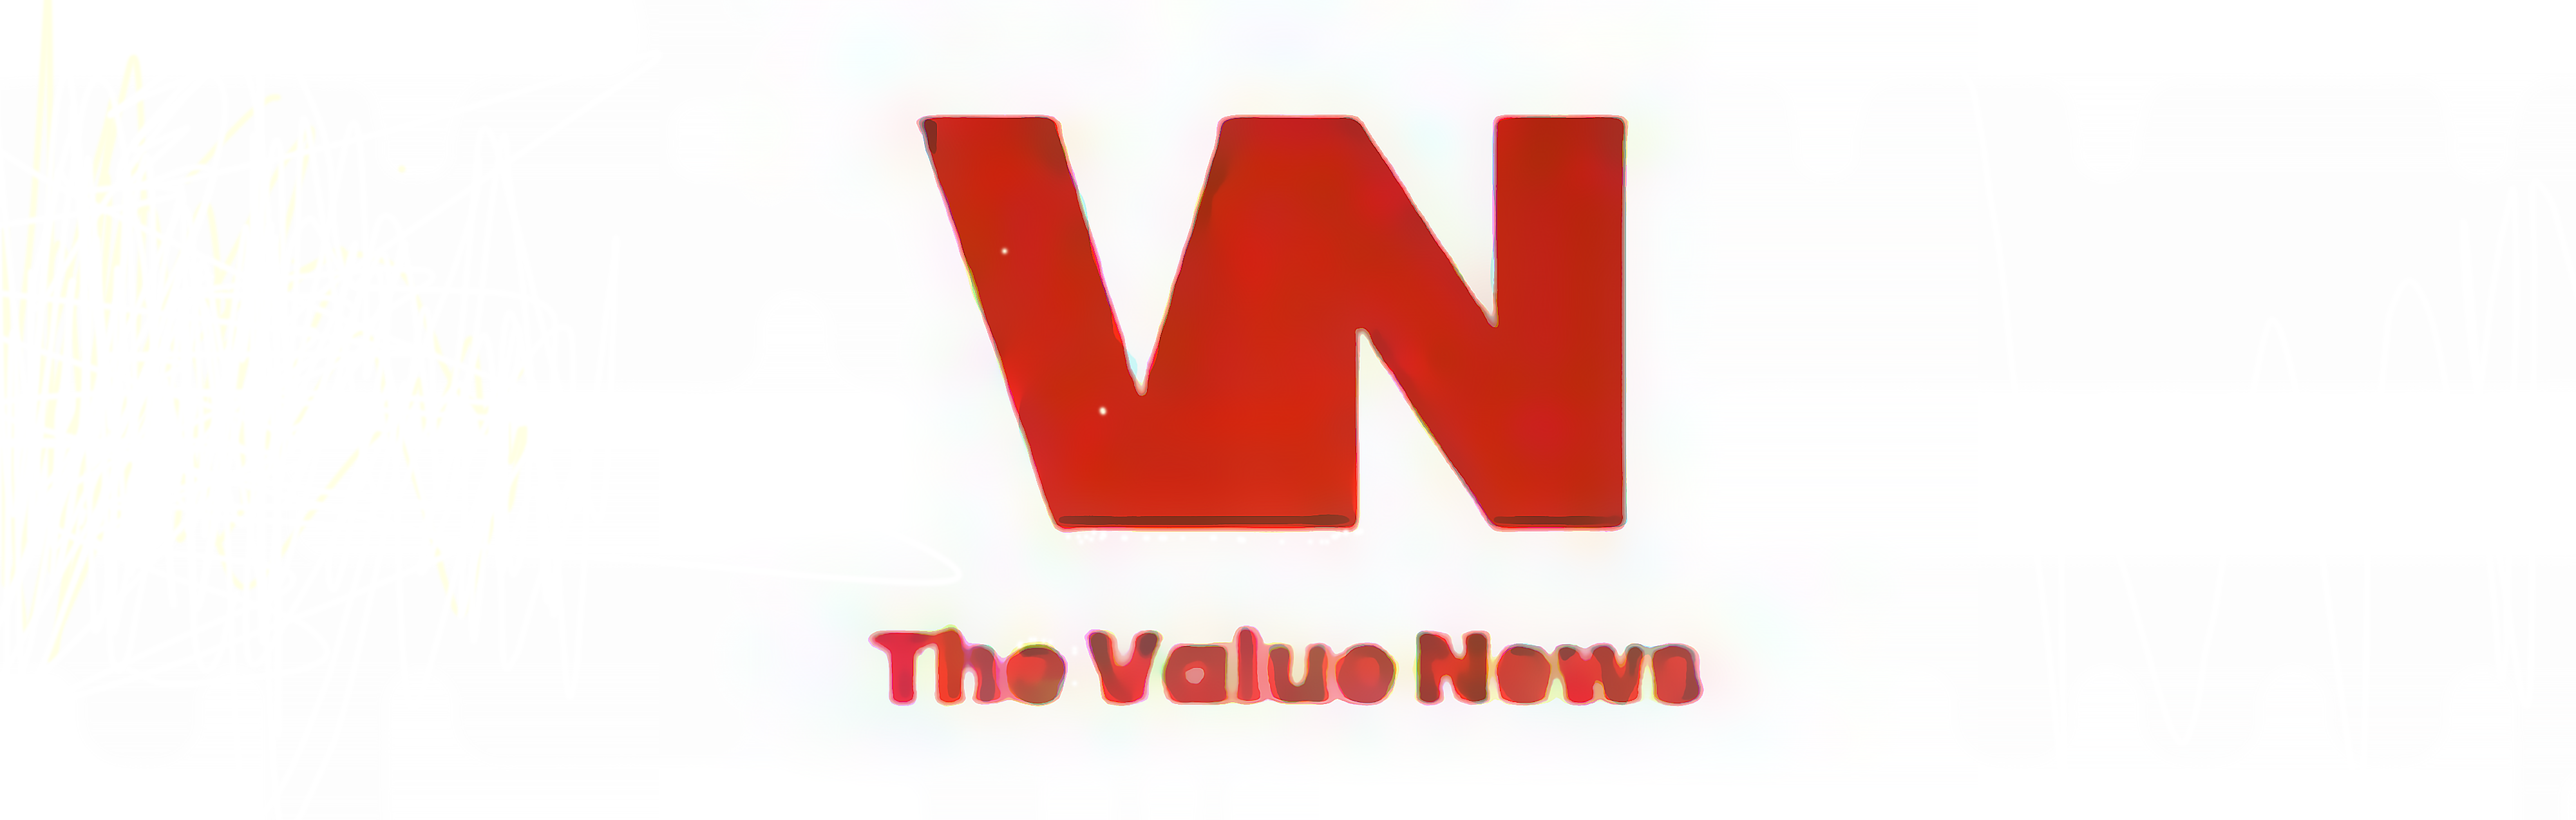 The Value News